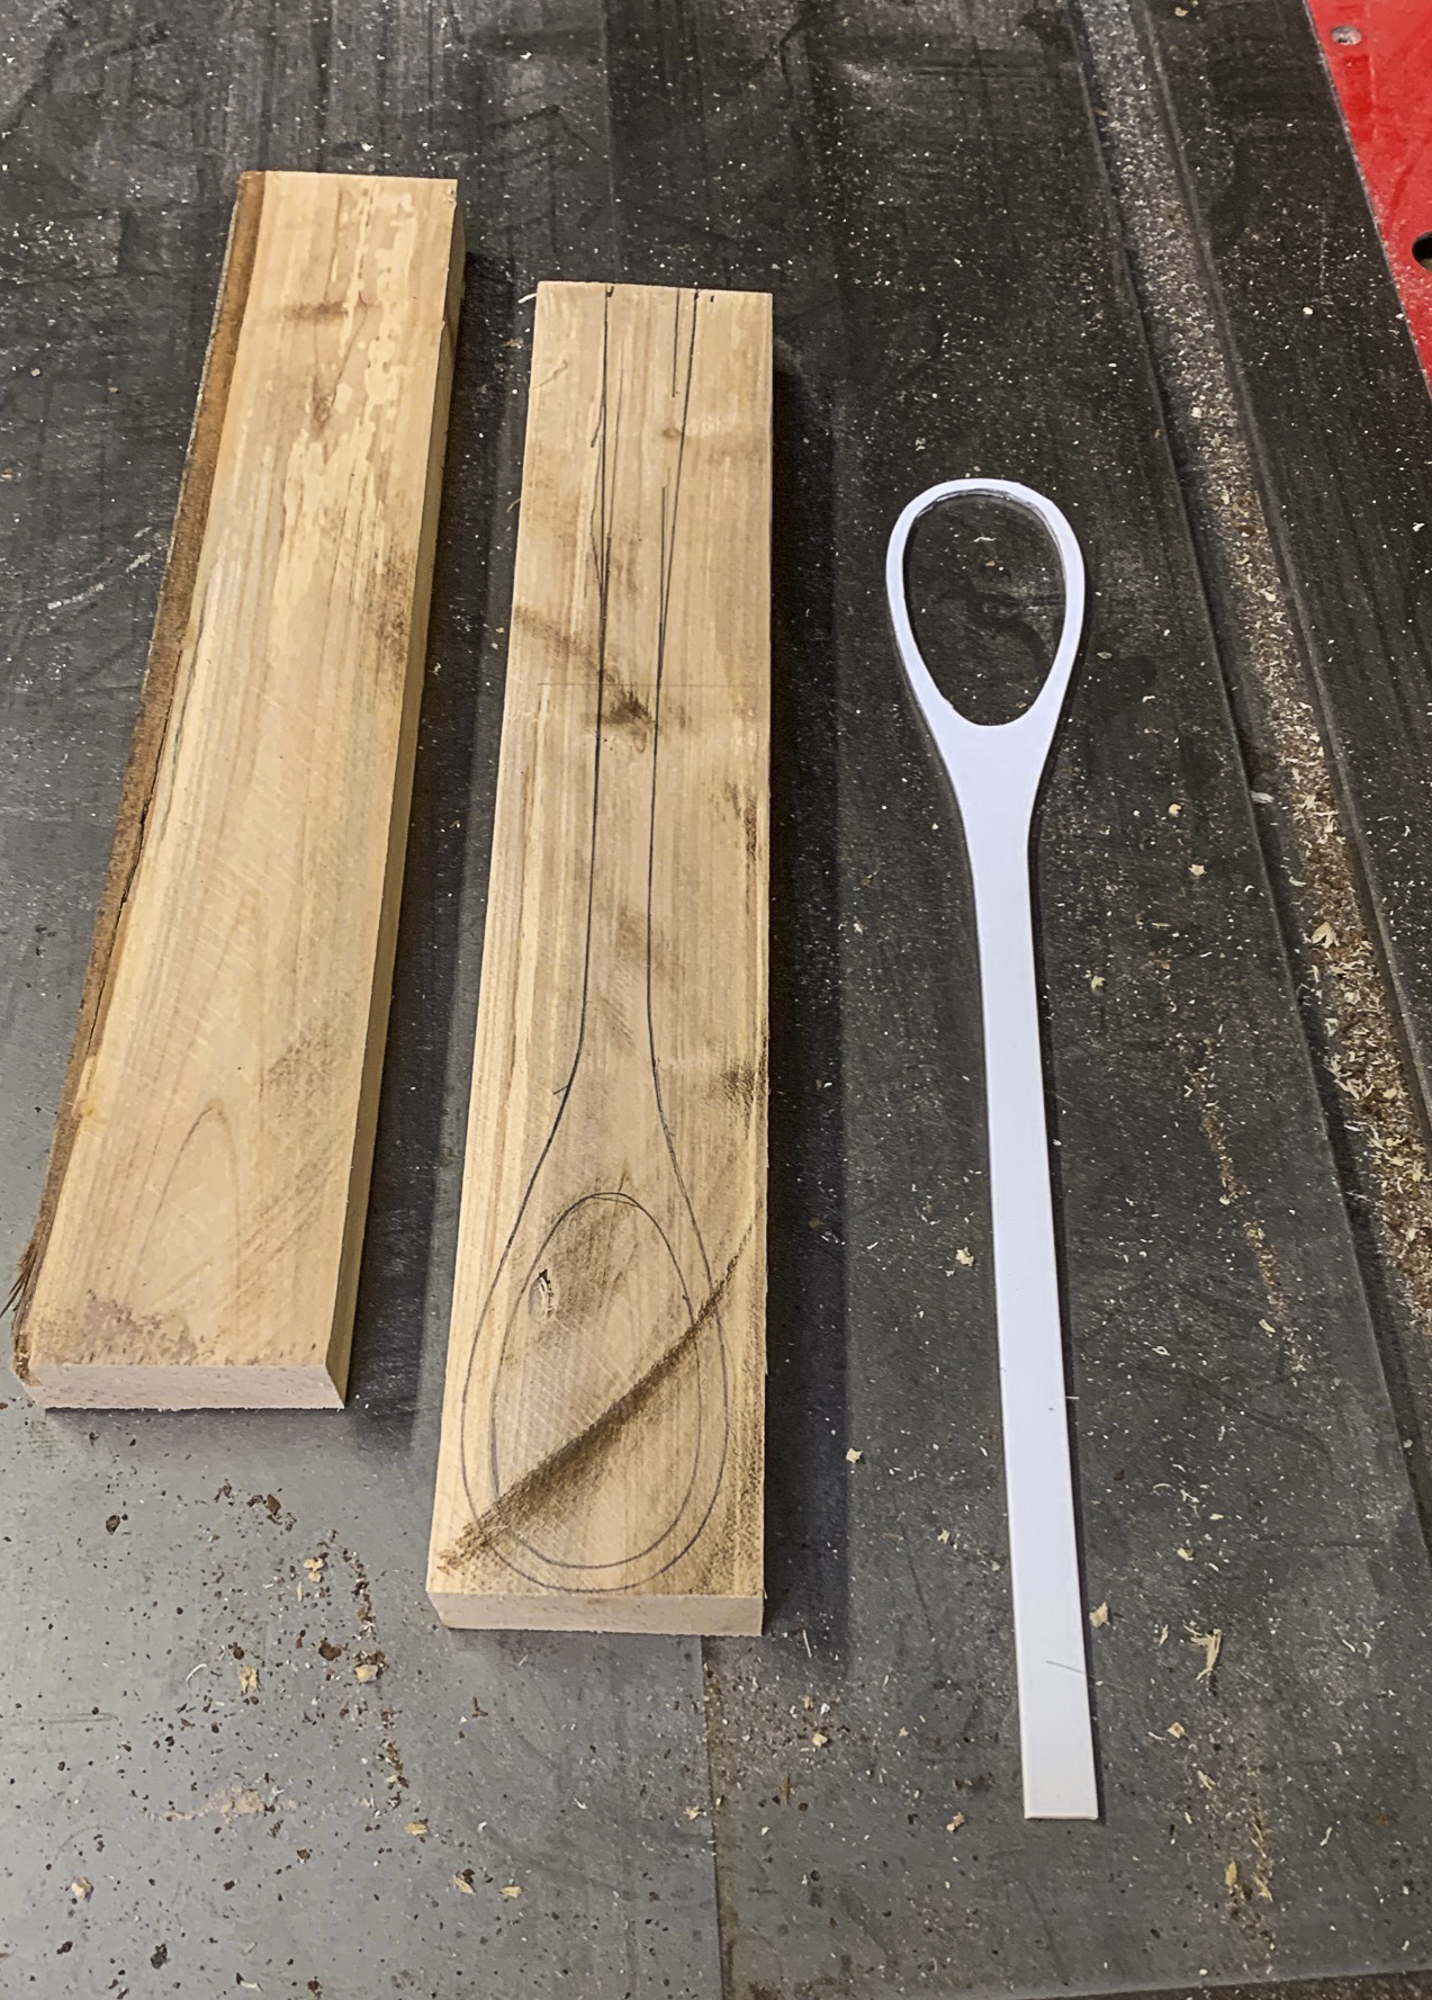 Spoon pattern made from styrene plastic